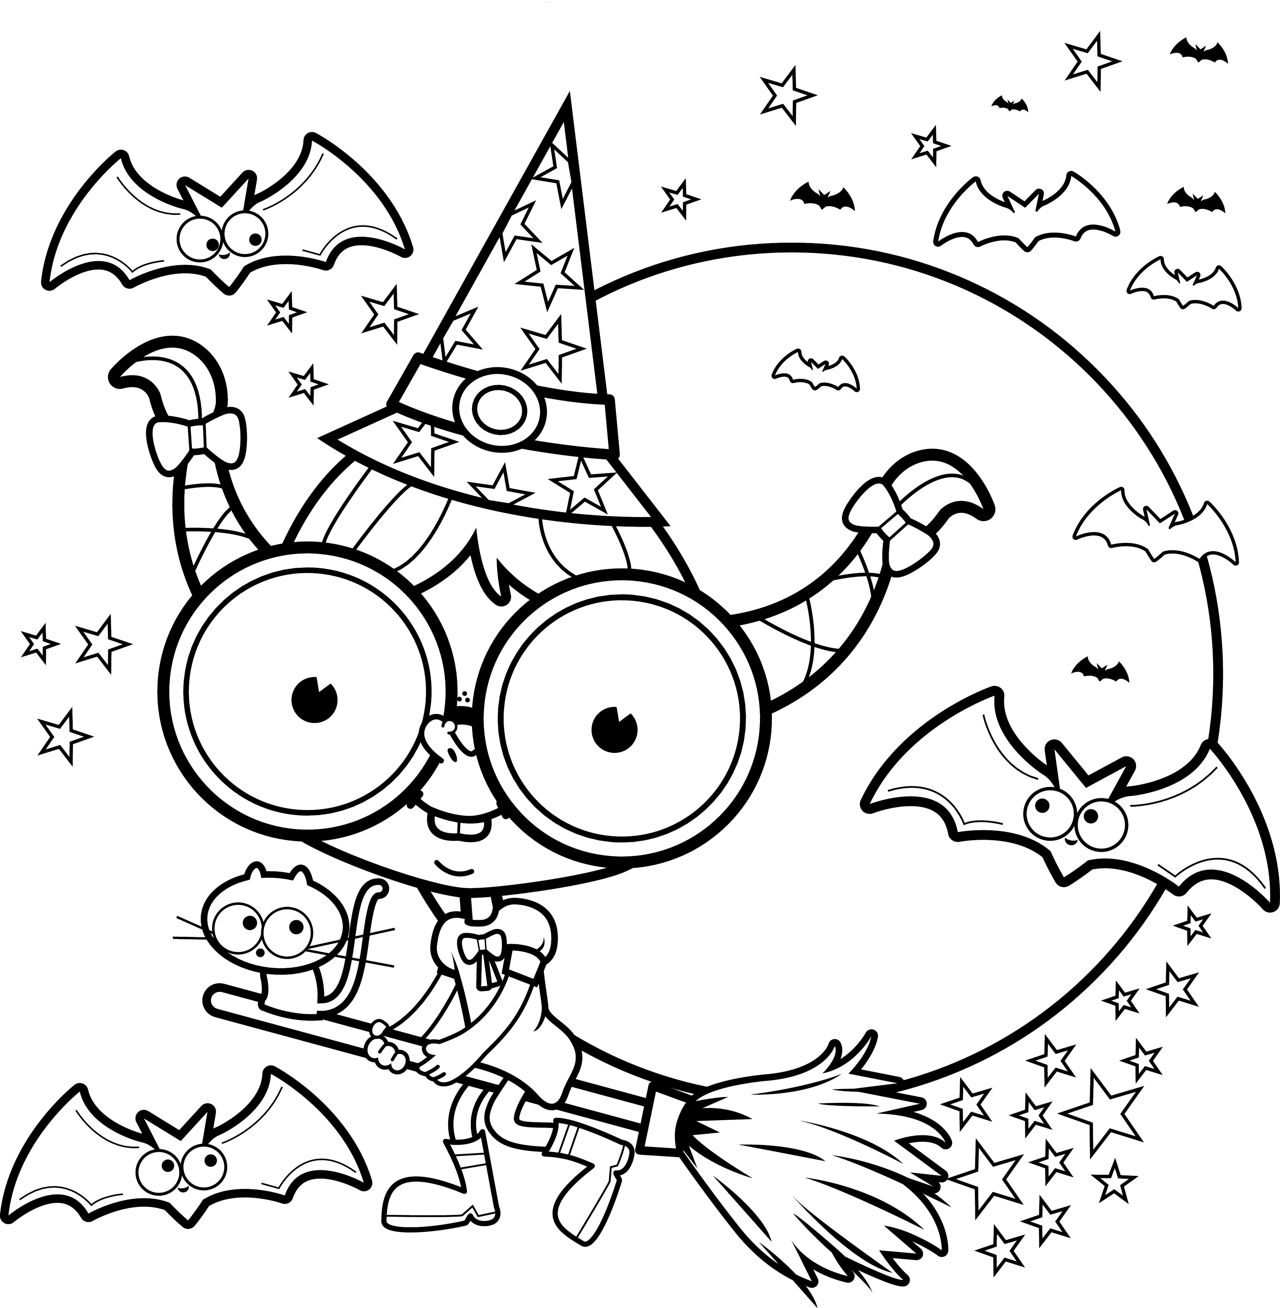 coloring sheets for halloween free halloween coloring pages for kids or for the kid in you halloween coloring sheets for